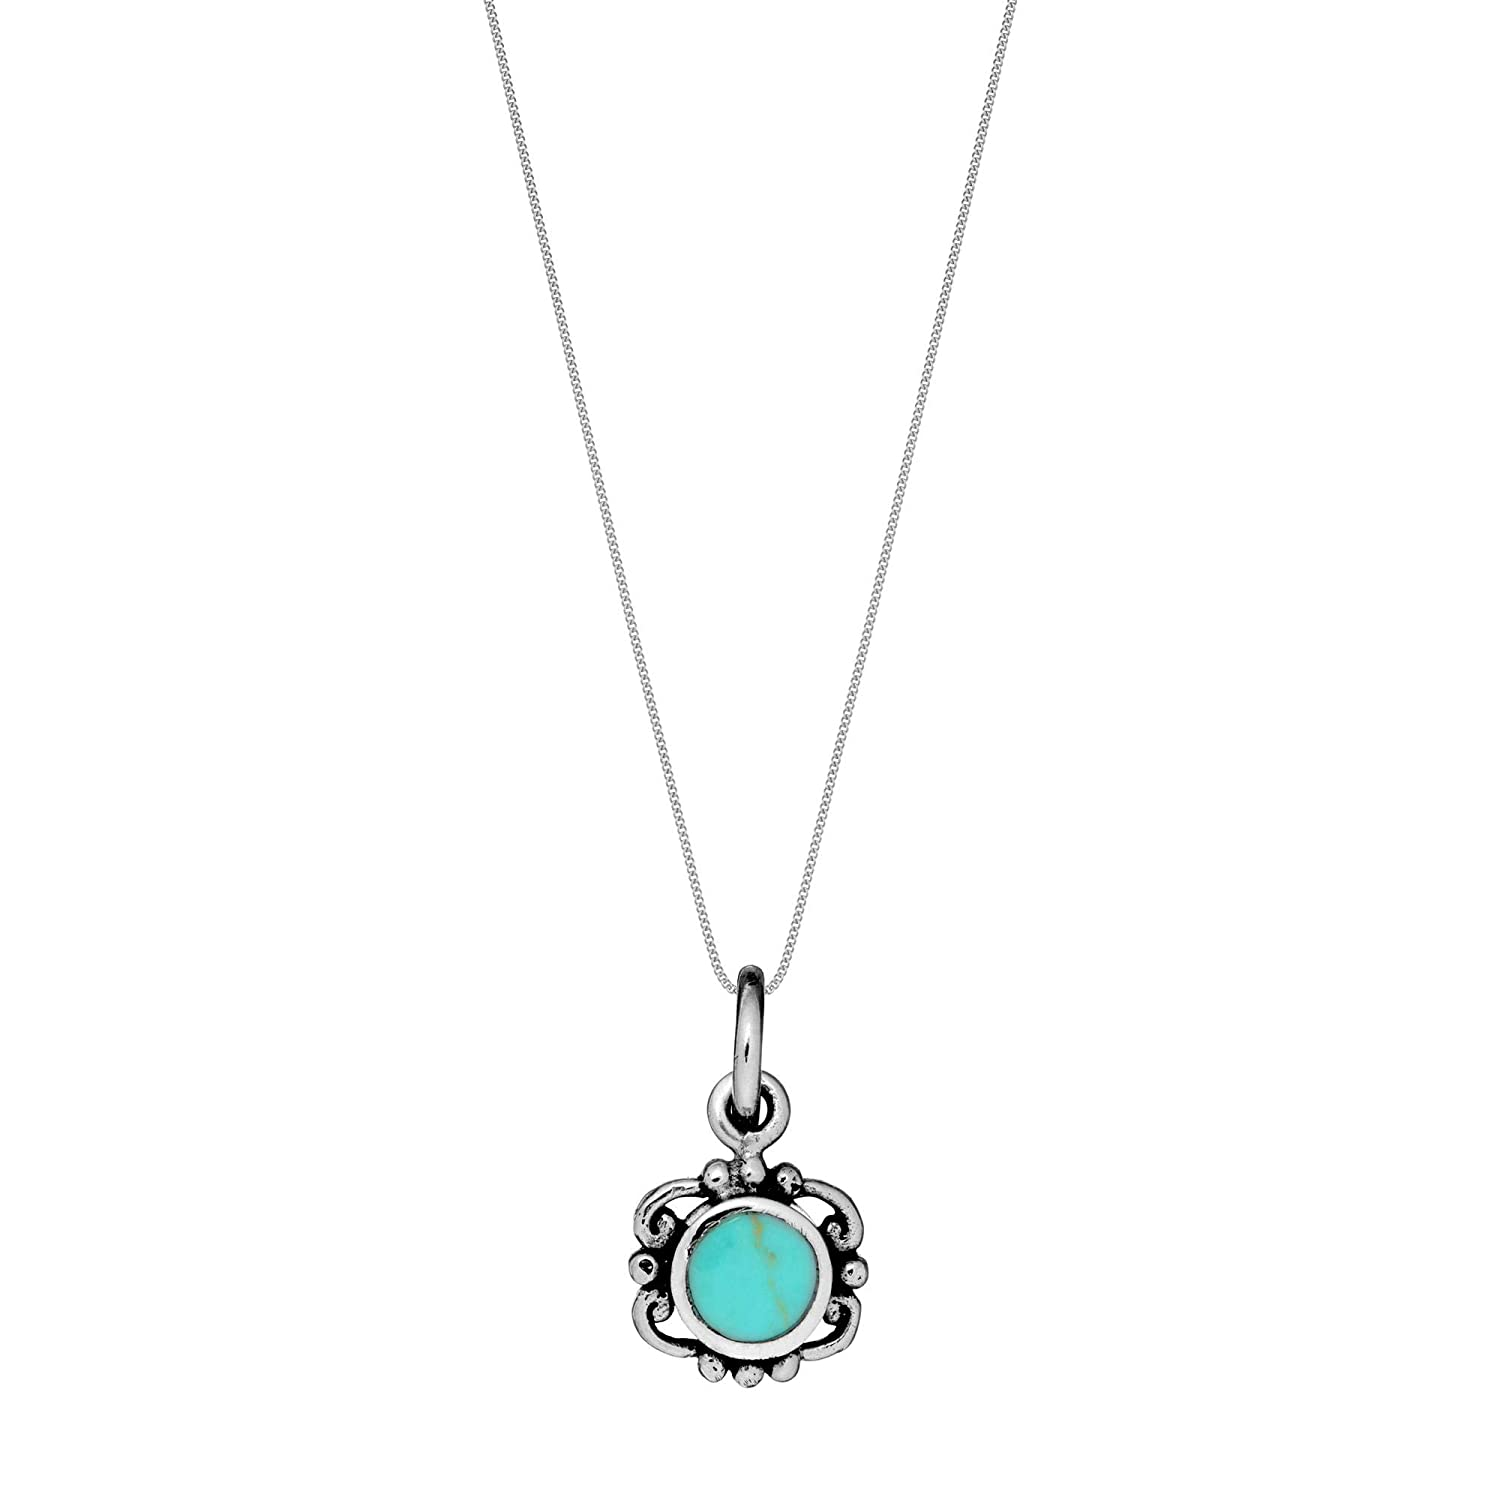 18 81stgeneration Womens .925 Sterling Silver Simulated Turquoise Filigree Vintage Style Pendant Necklace